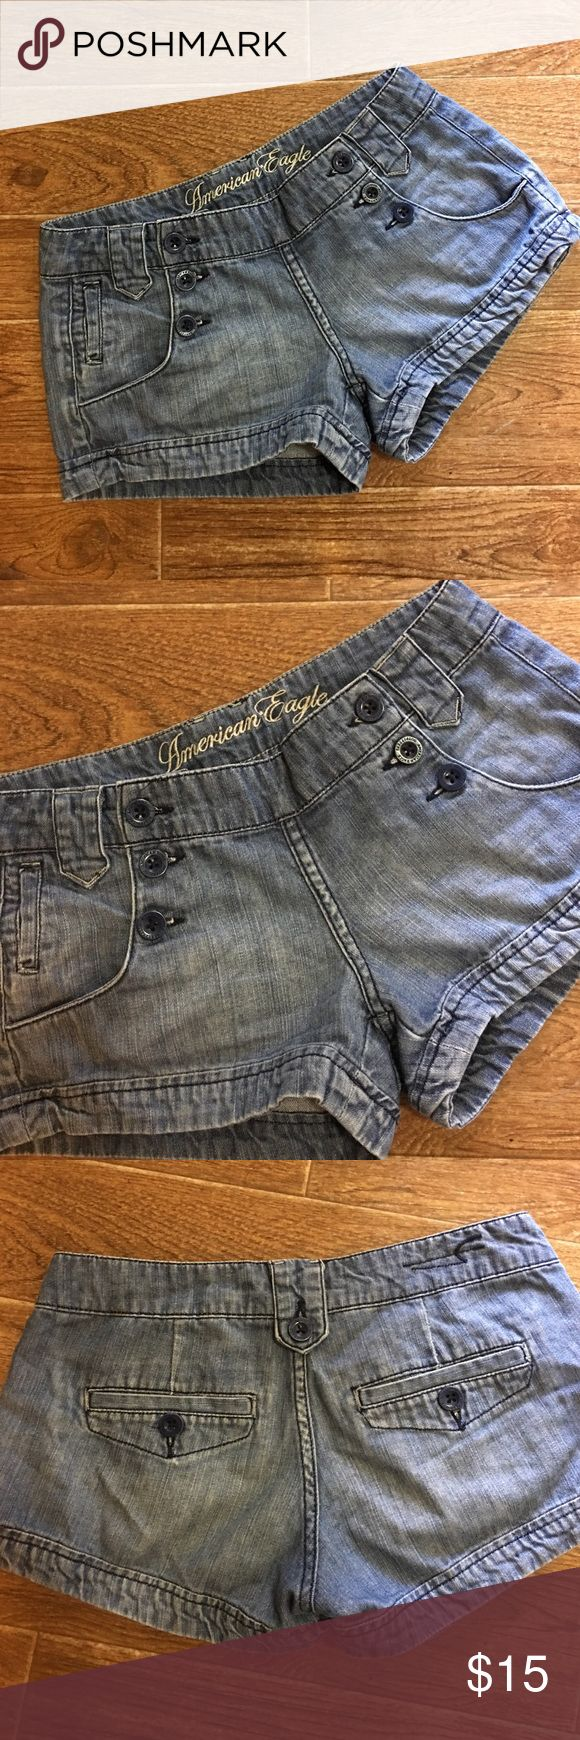 American Eagle Outfitters- Denim Sailor Shorts American Eagle Outfitters soft denim sailor shorts American Eagle size too. In great preowned condition. Please be sure to check out all of my other boutique items to bundle and save. Same day or next business day shipping is guaranteed. Reasonable offers will be considered! American Eagle Outfitters Shorts Jean Shorts